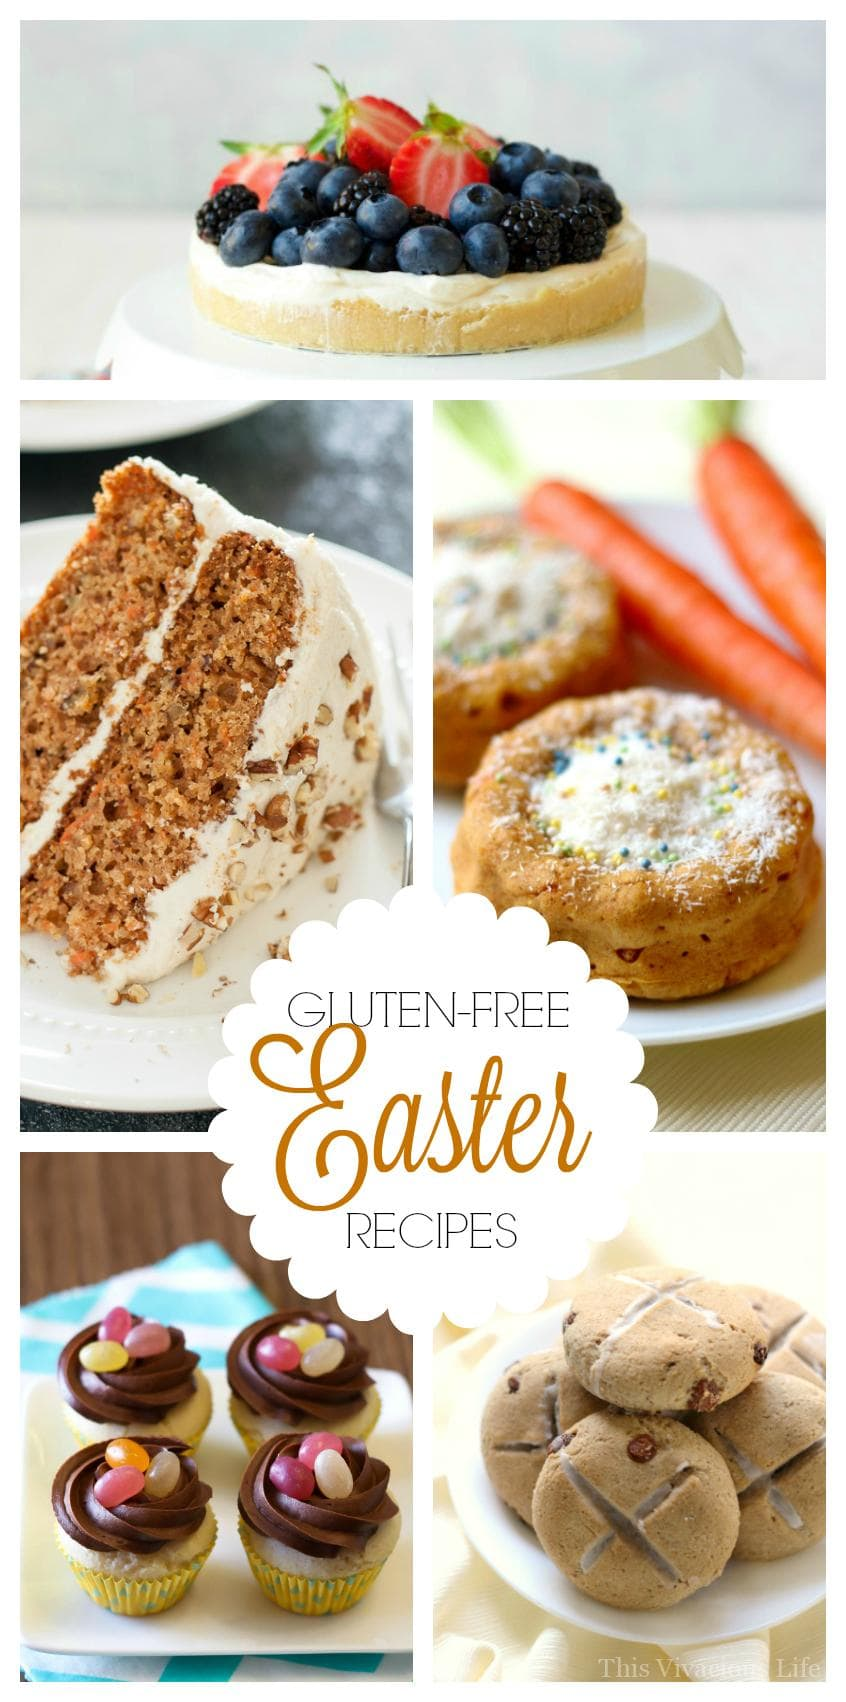 These gluten-free Easter recipes are all festive, flavorful and perfect for your next Spring Easter gathering.